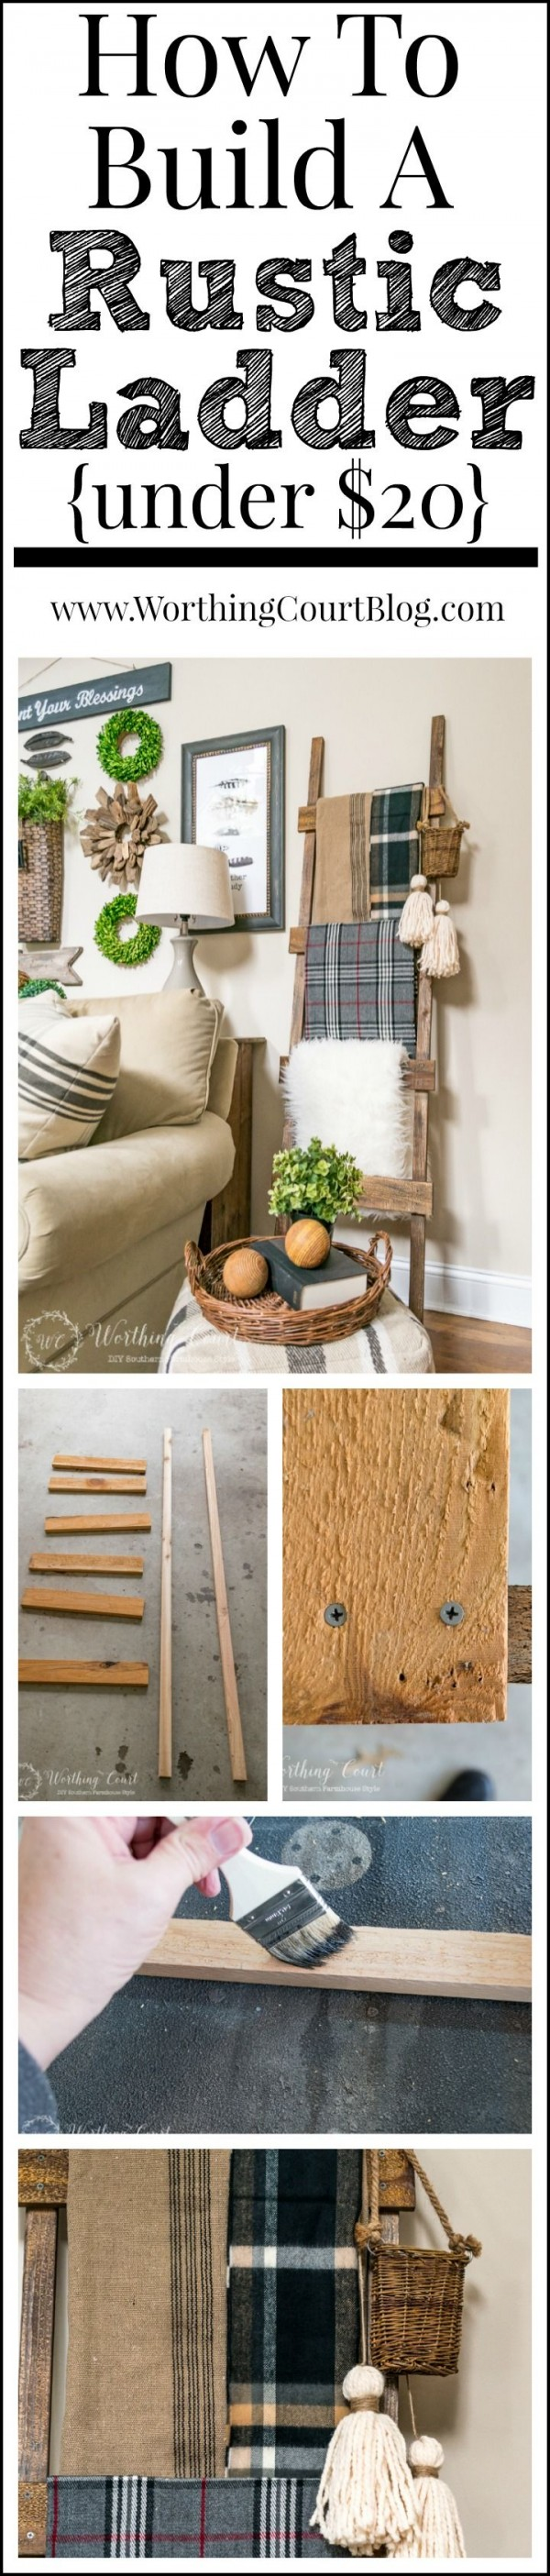 Check out the tutorial on how to make a #DIY #farmhouse rustic ladder. Looks easy enough! #HomeDecorIdeas